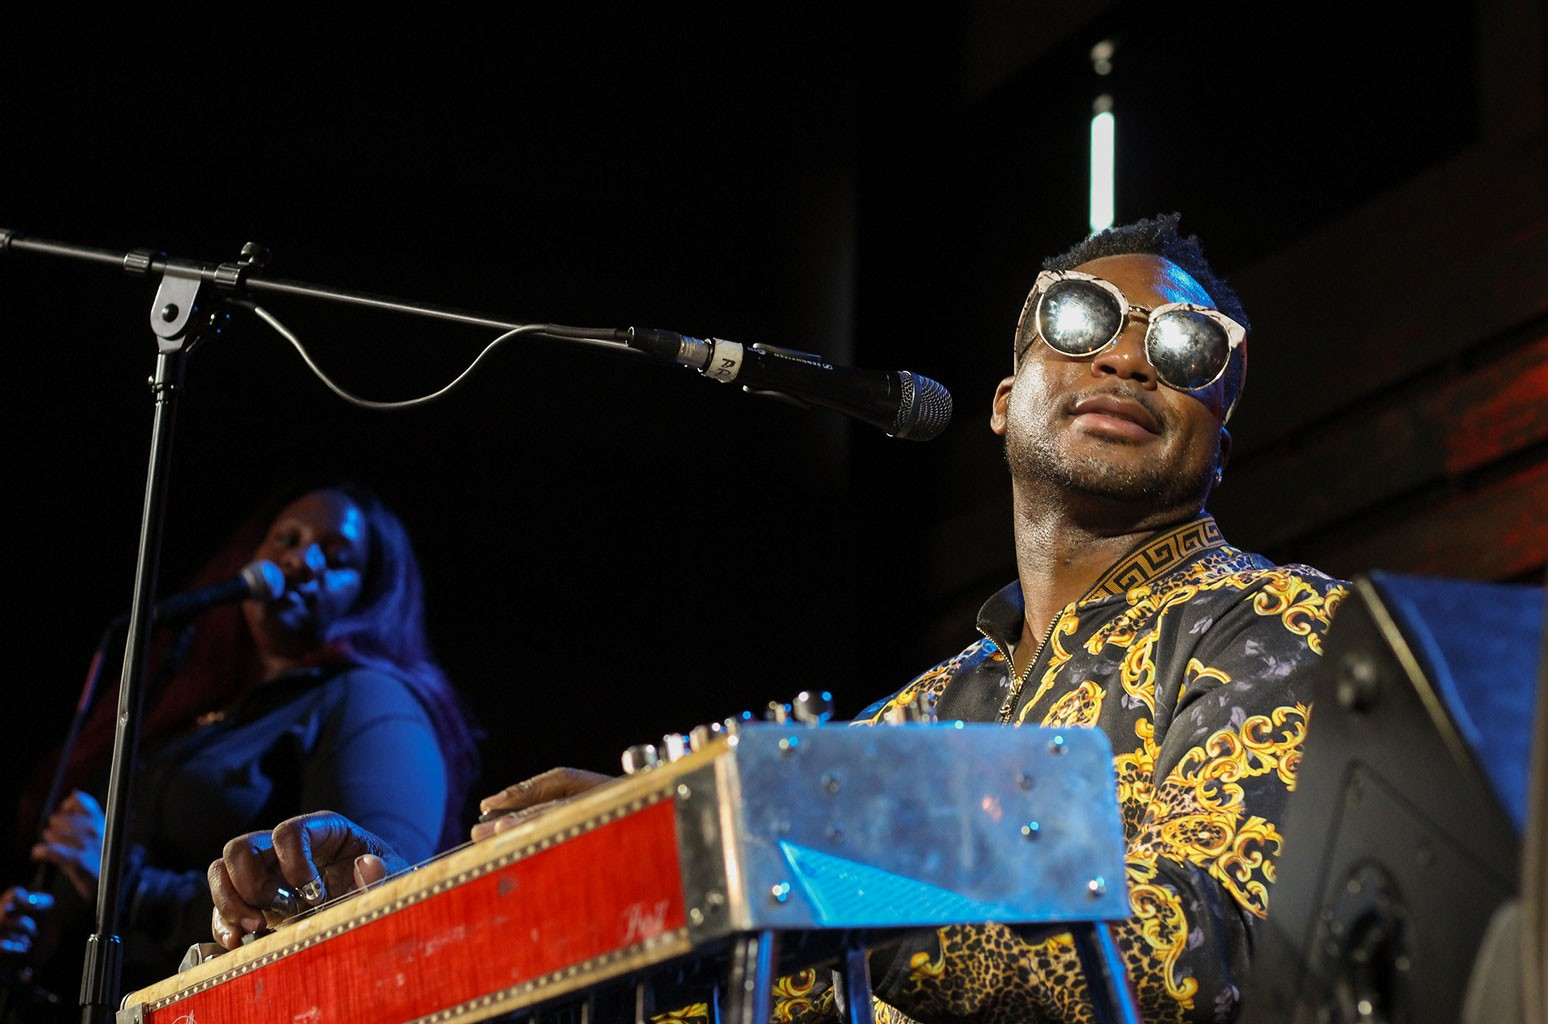 Robert Randolph, Nile Rodgers and More Kick Off Inaugural Juneteenth Unityfest: 'We Finally Have Our Own Day'